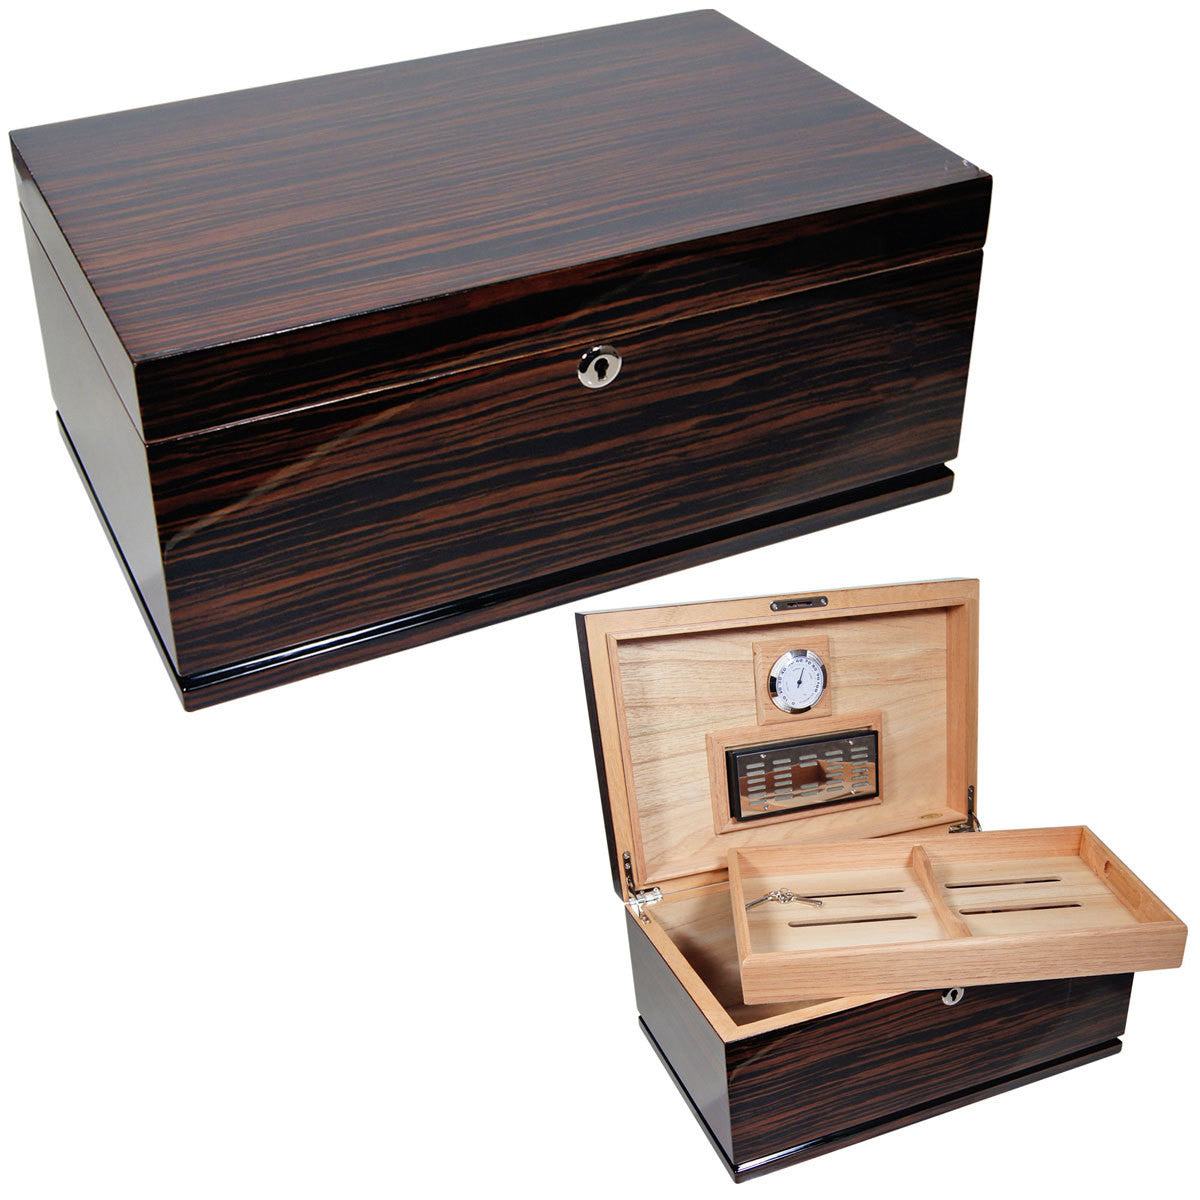 Cuban Crafters Gran Majestad Large Cigar Humidors for 150 Cigars - Cigar boulevard